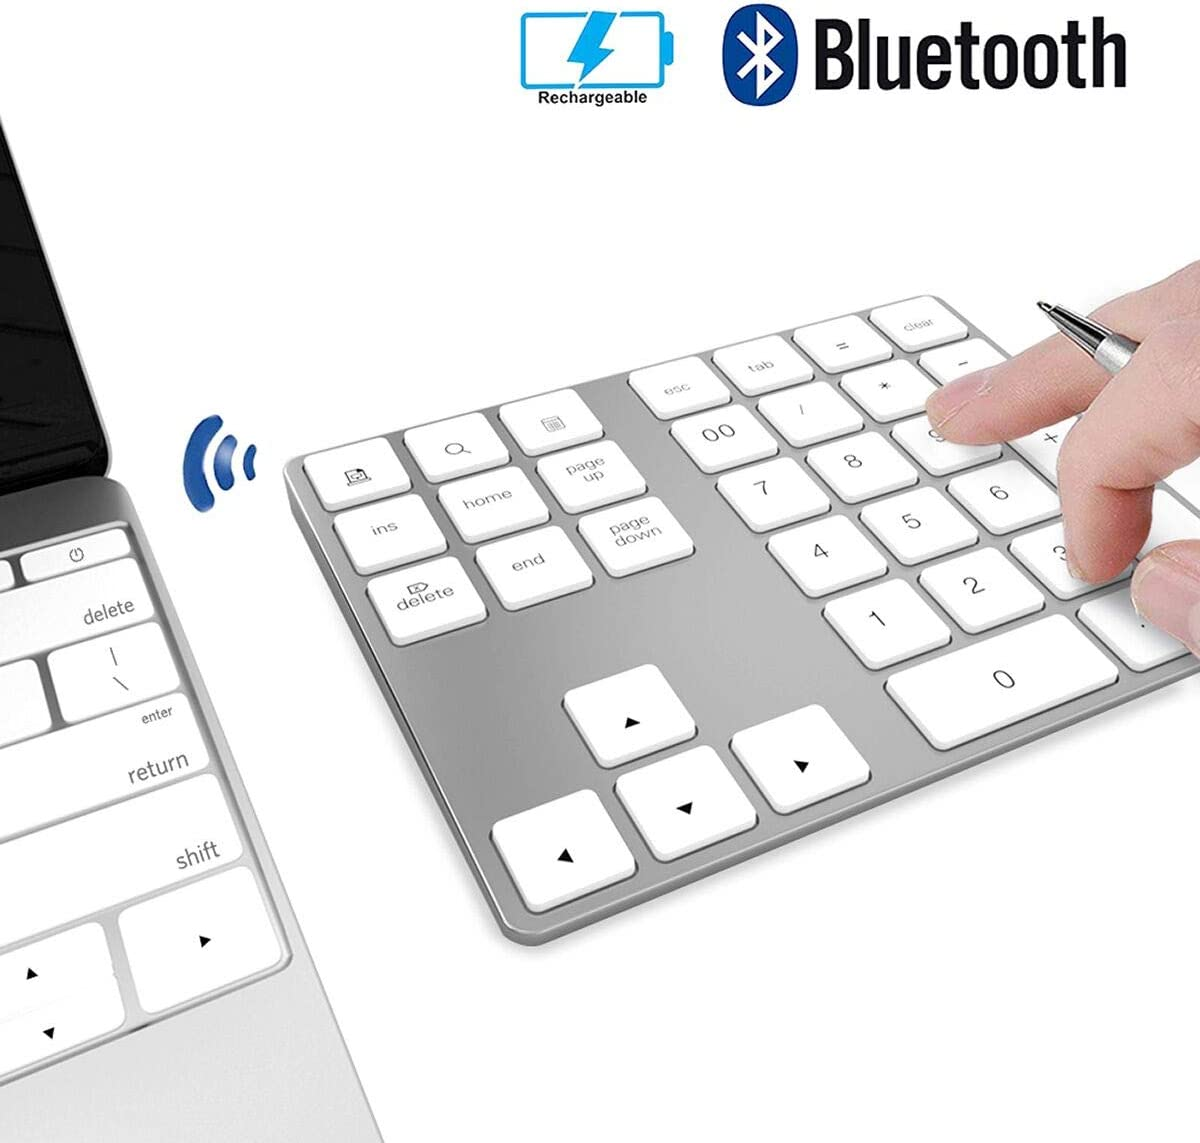 Wireless Numeric Keypad, JOYEKY Aluminum Bluetooth Number Pad 34-Keys External Number Keyboard Shortcut Keypad Data Entry Compatible iMac MacBook Air, MacBook Pro, MacBook and Mac Mini etc (Silver)